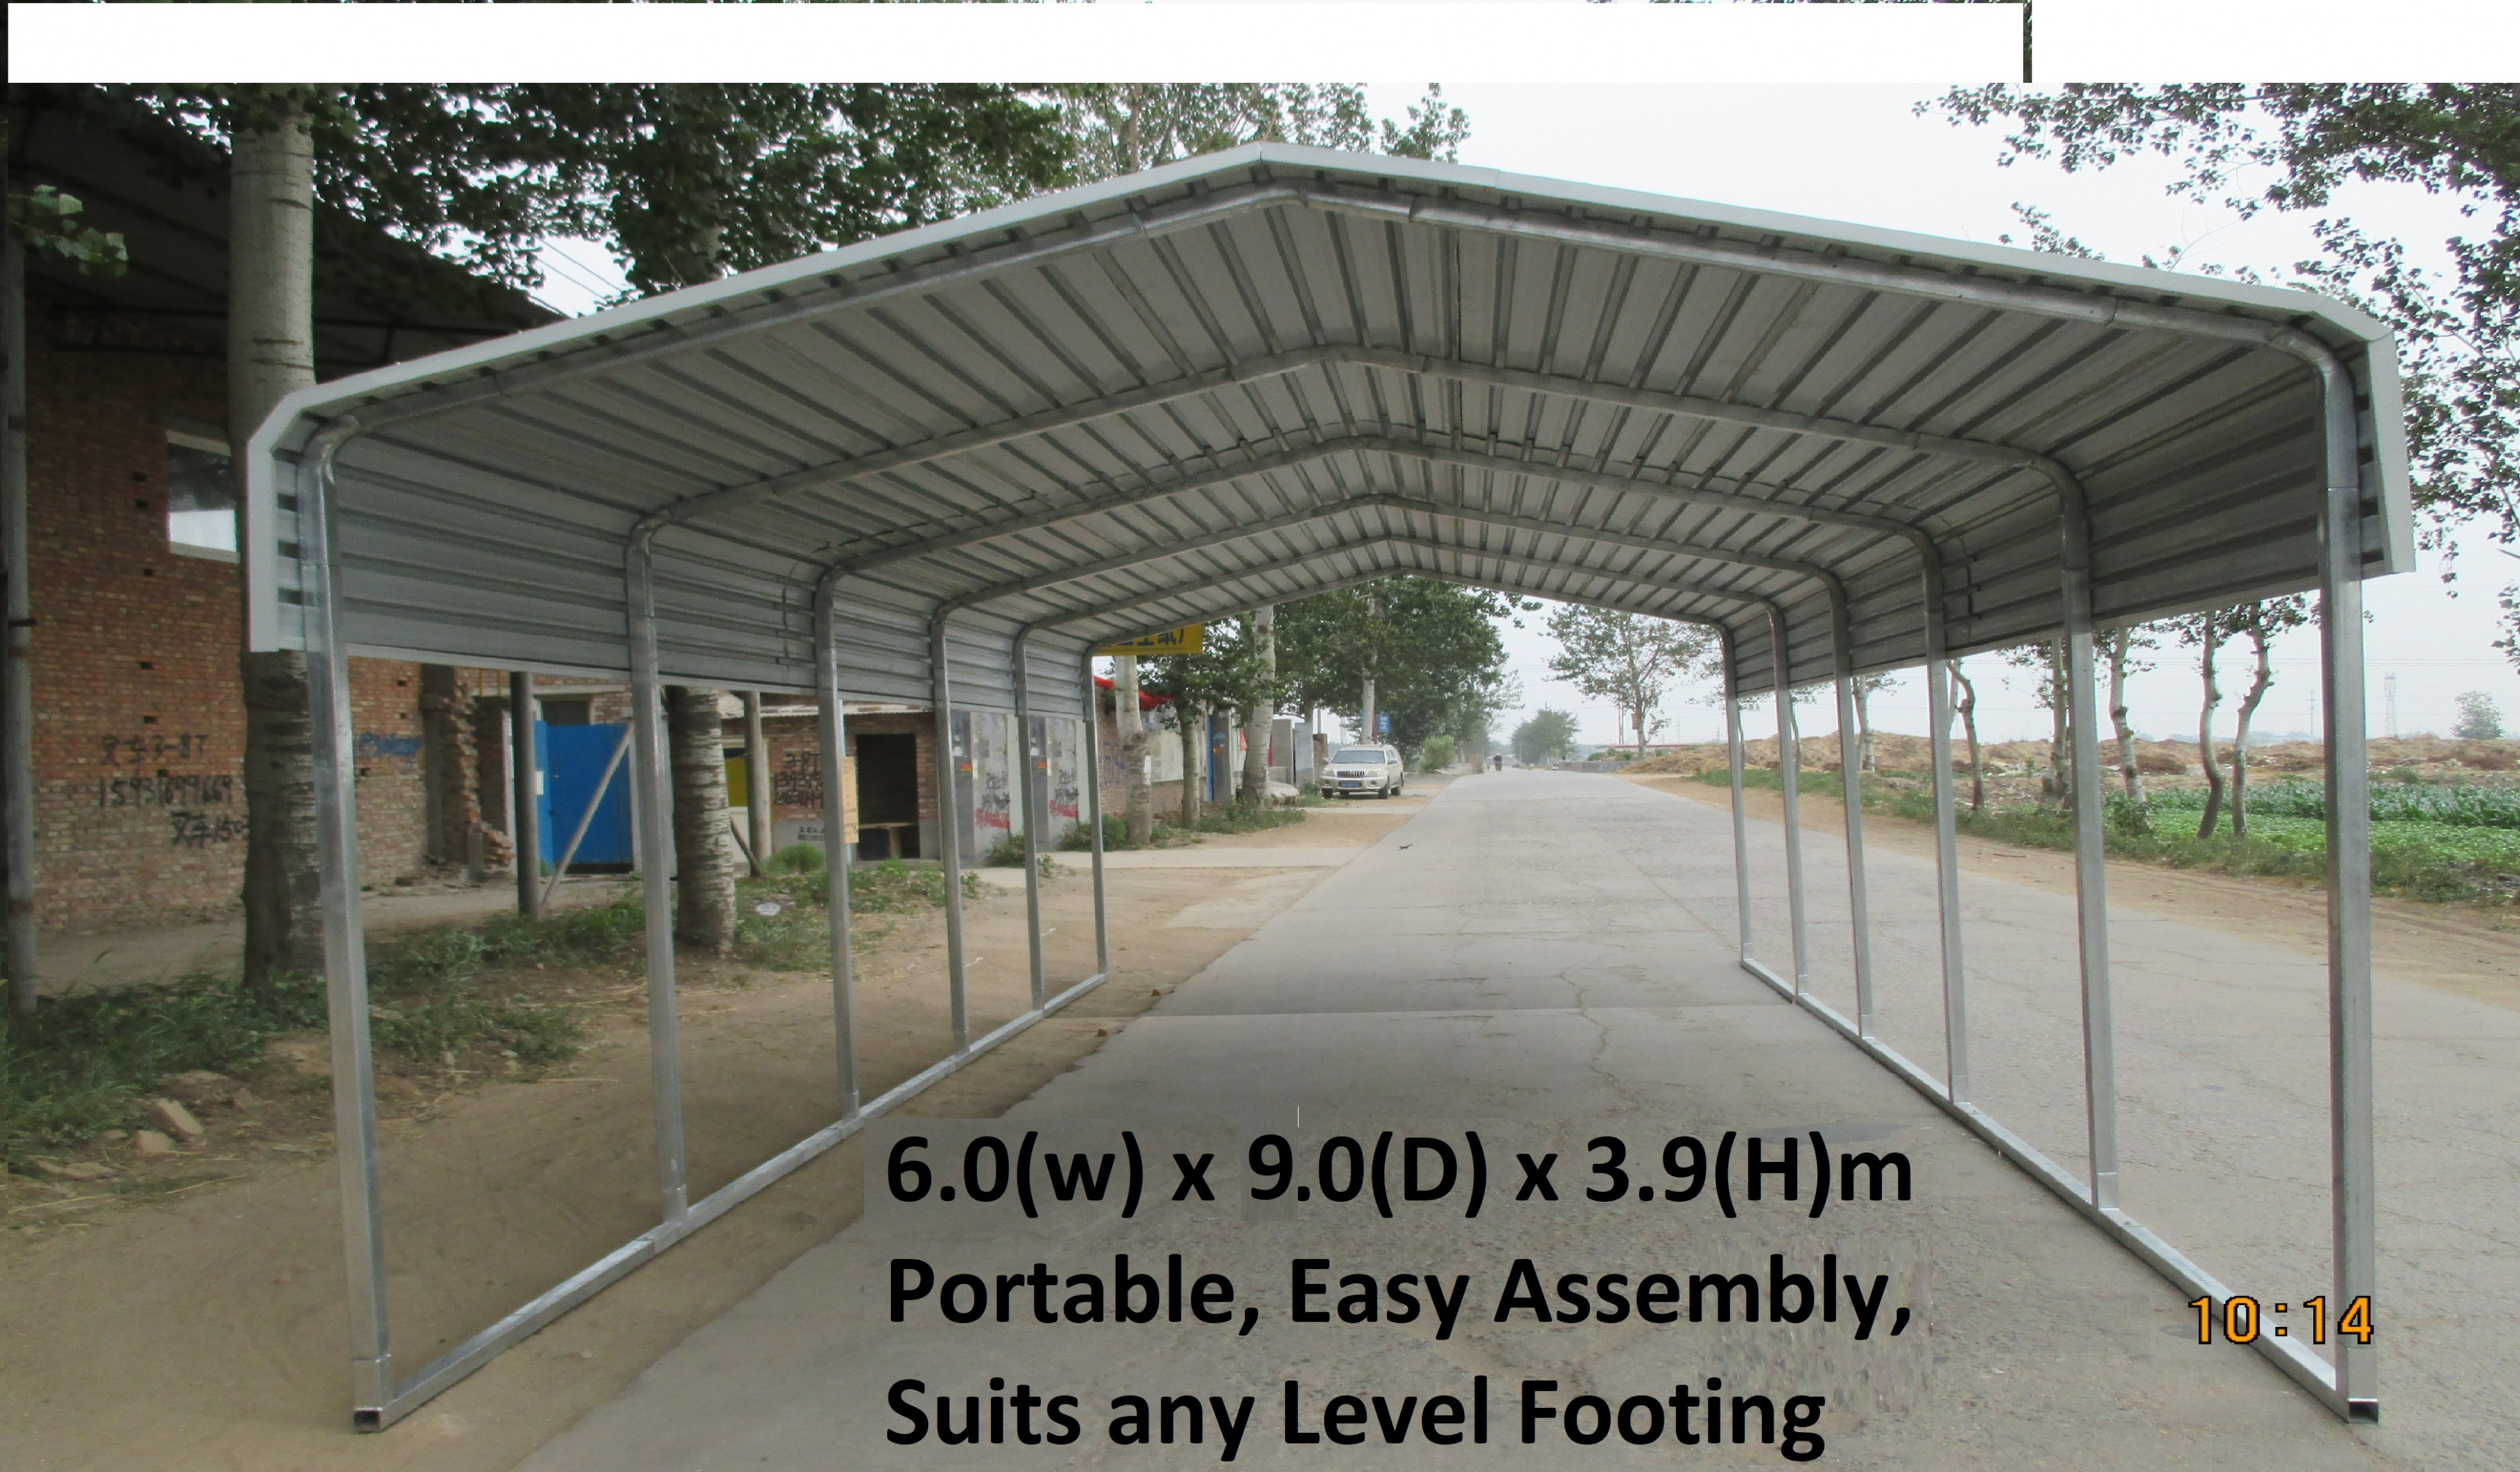 Portable Carport 11x11m Wrapping Roof Suitable For Any Level Floor! Carport Tent Setup